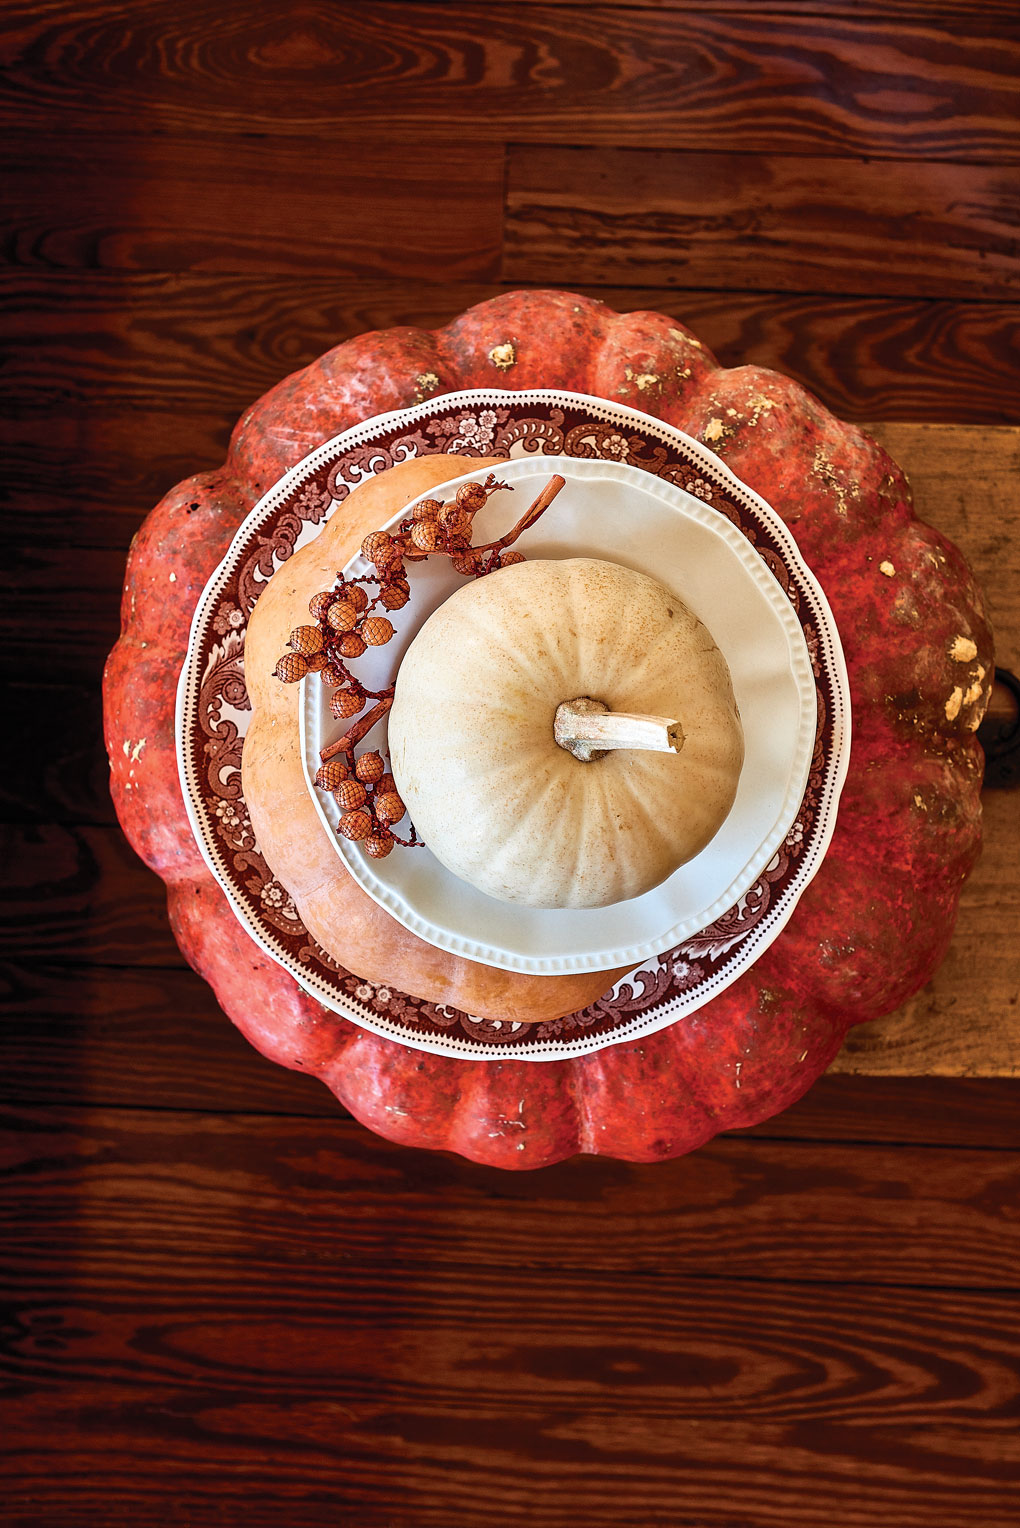 Aerial shot of a stack of layered pumpkins and fall themed china plates set on a wooden grain table.